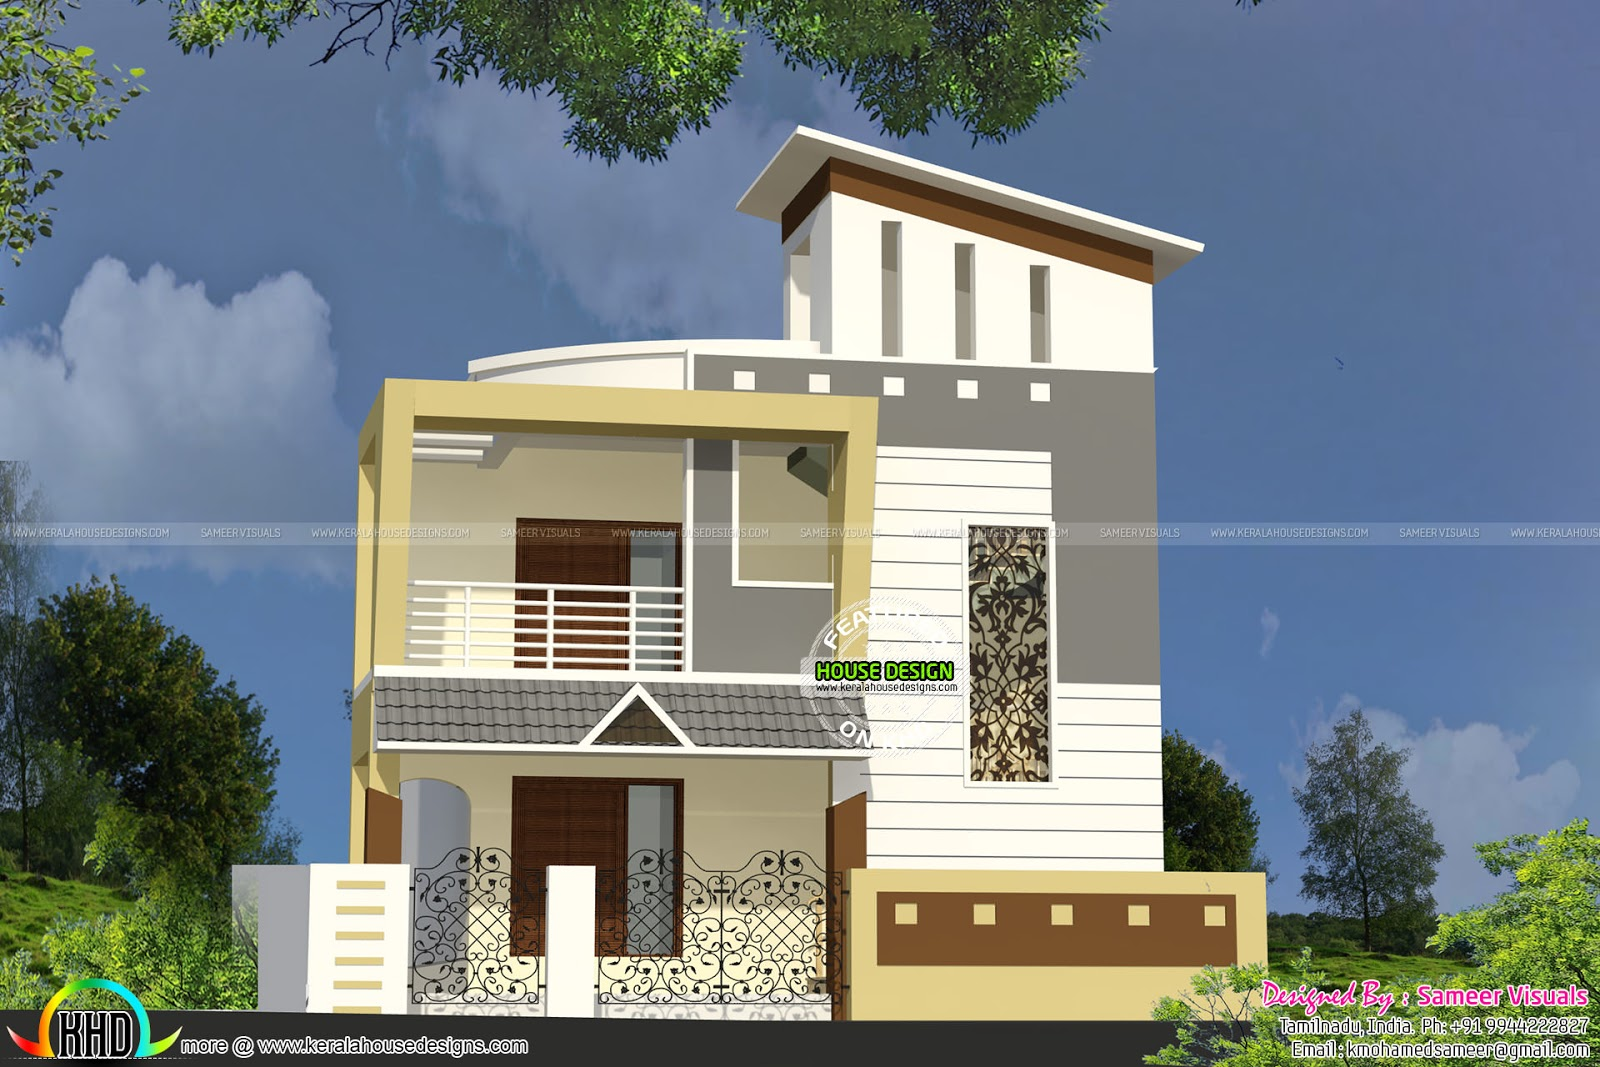 Double floor small home kerala home design and floor plans for House design in small area